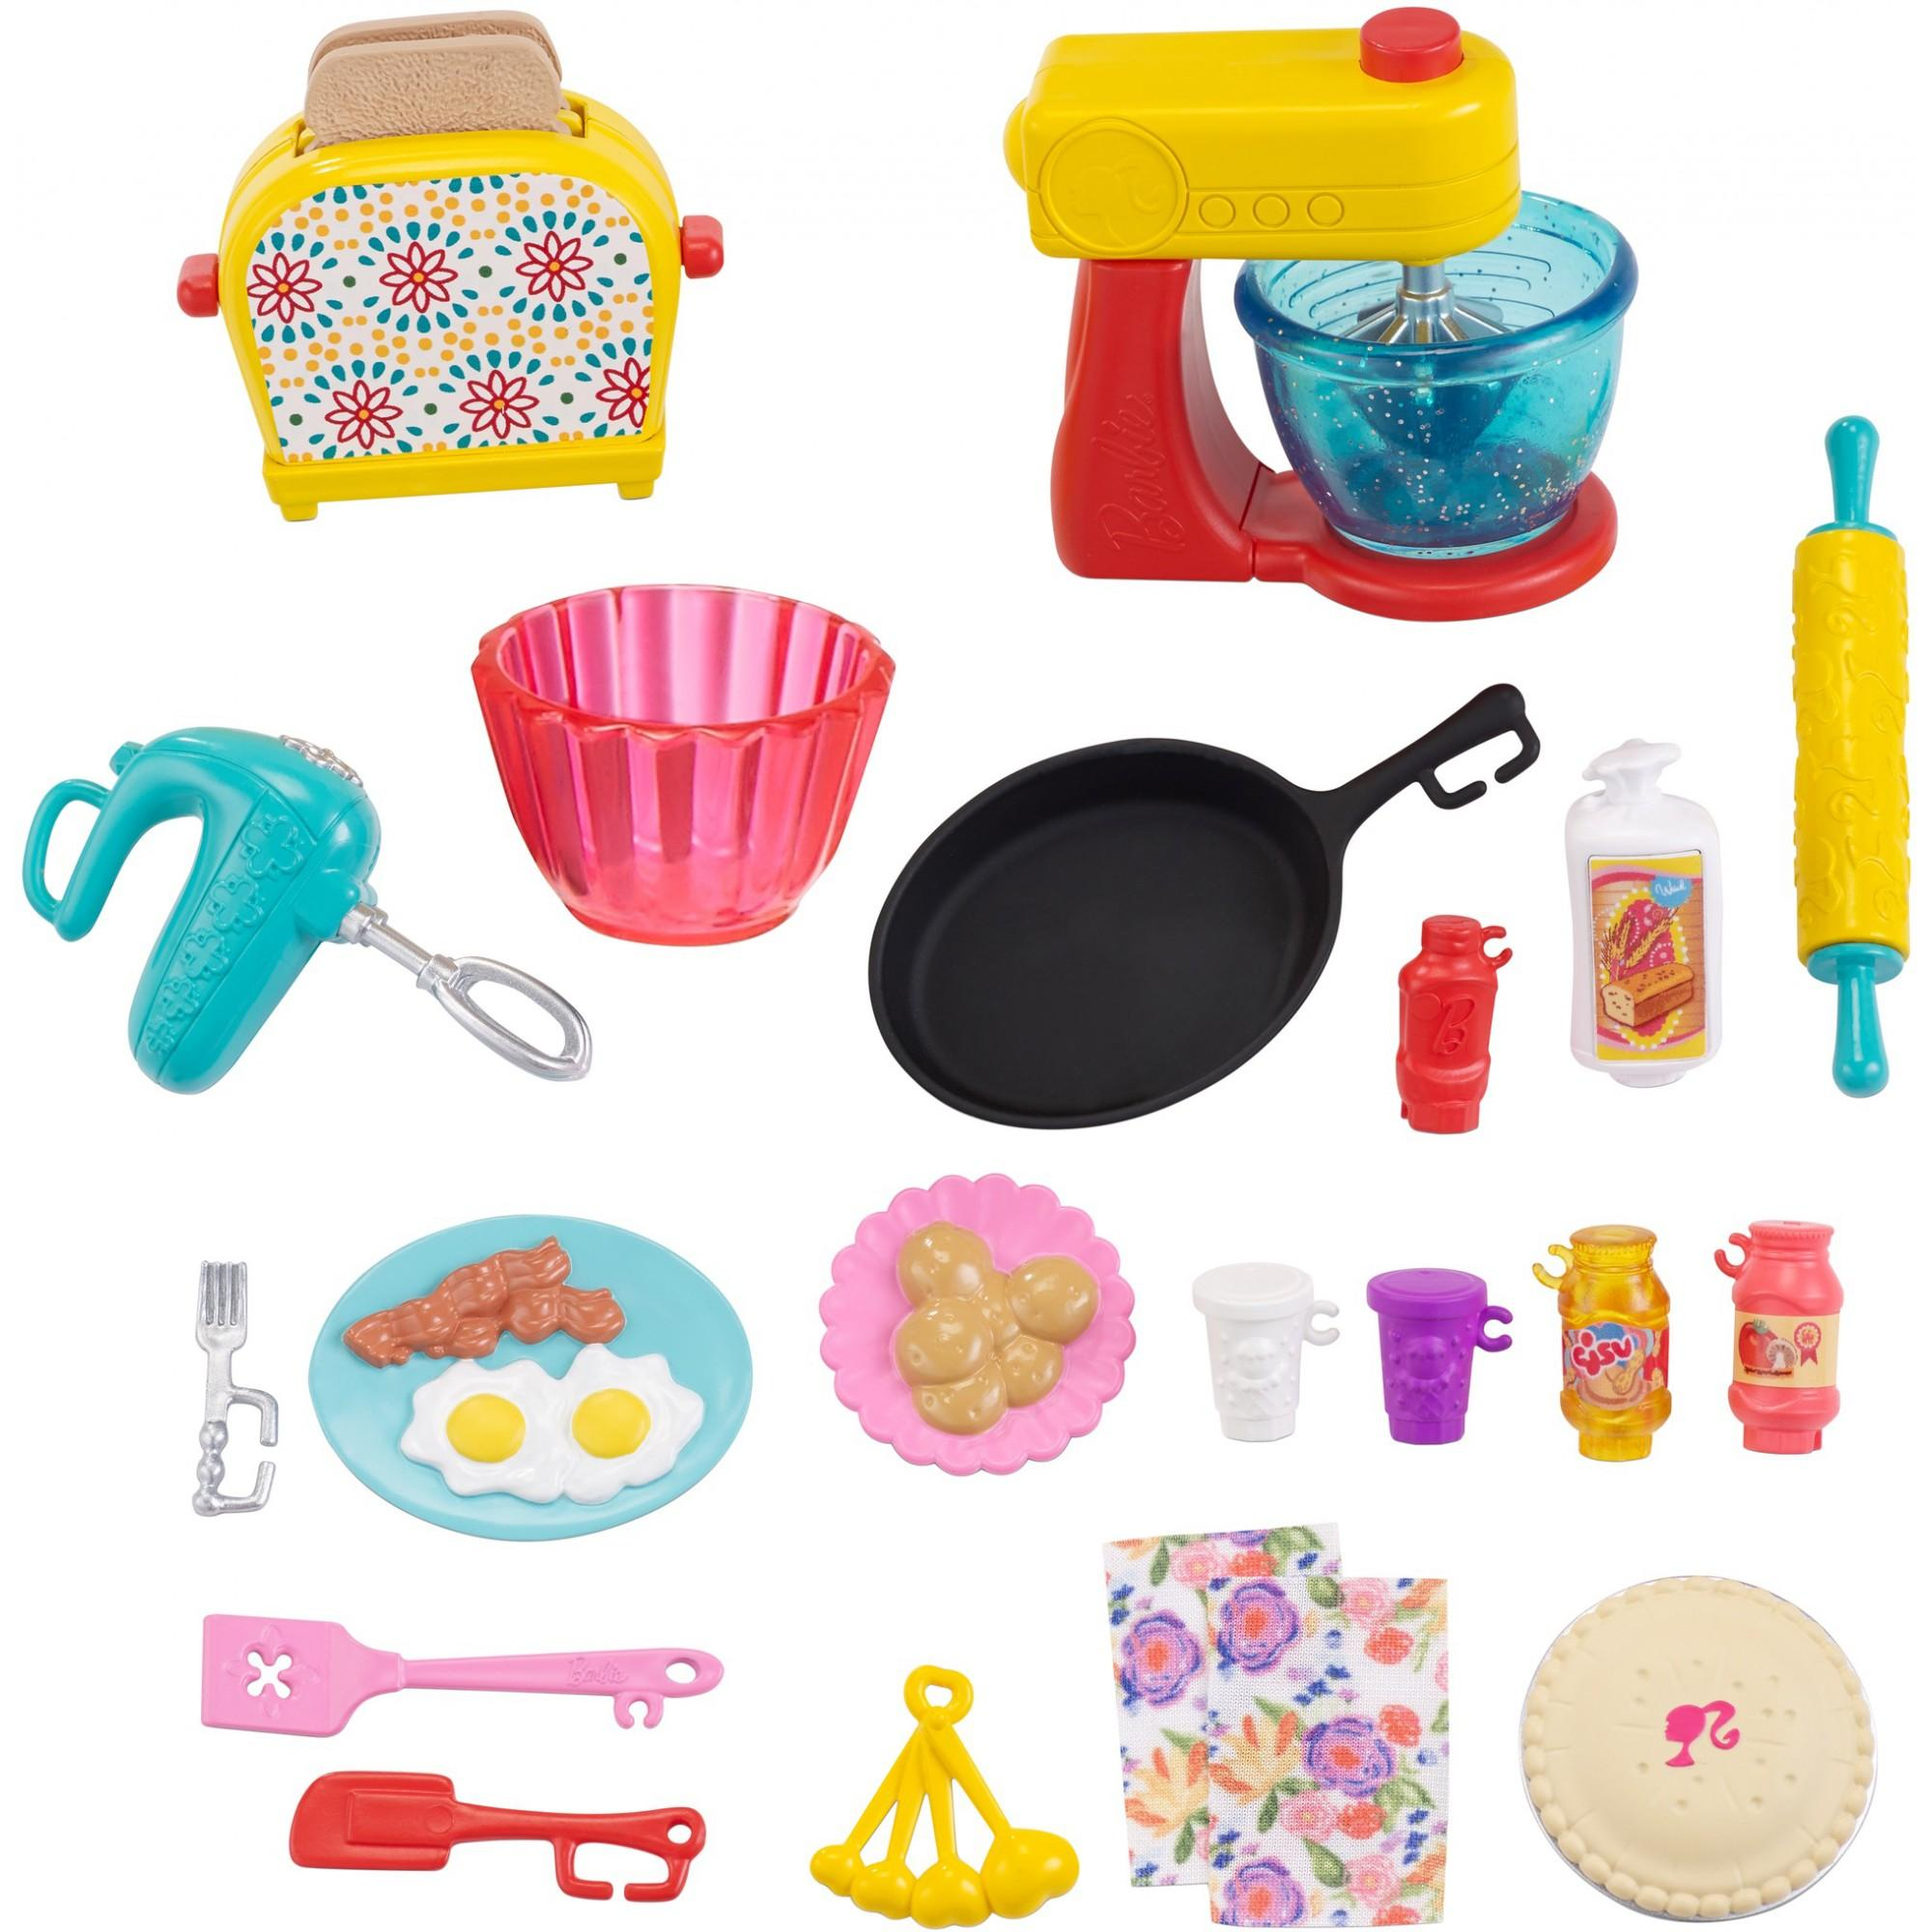 Barbie Cooking Accessories Cheap Toys Kids Toys